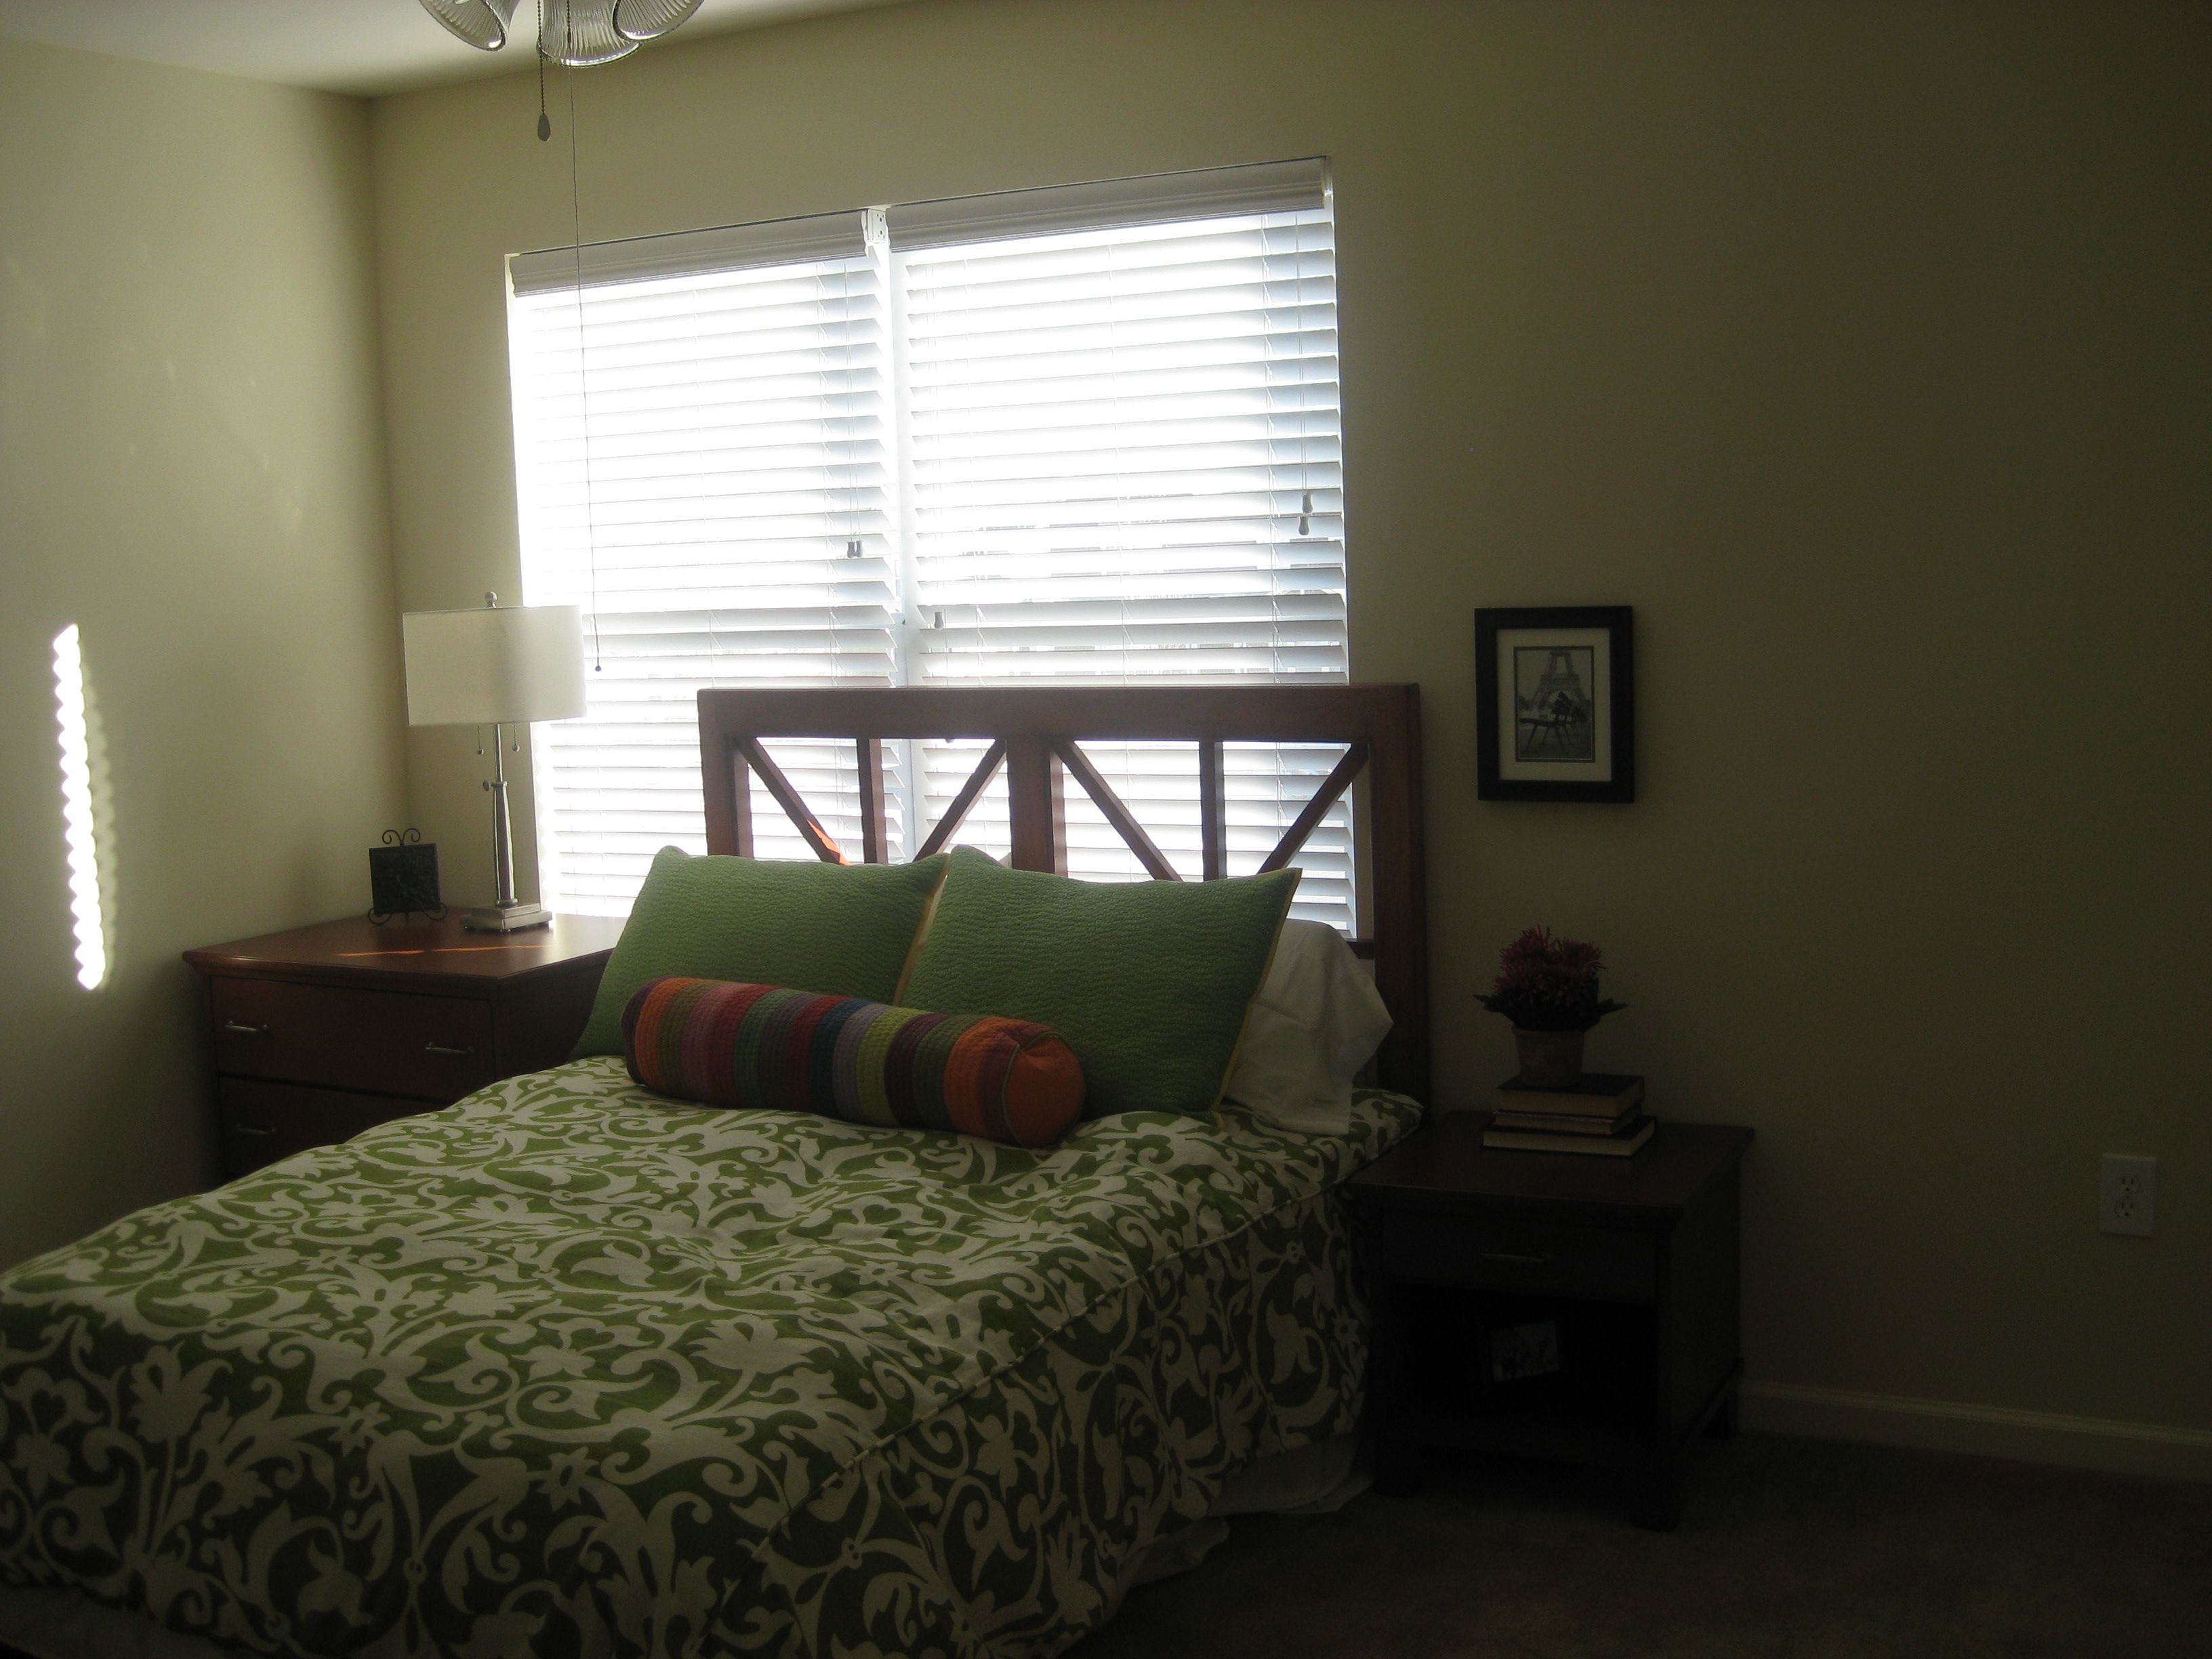 Tired of student apartments? We have student COTTAGES! Check out this spacious bedroom in a 3x3 Fairview cottage!